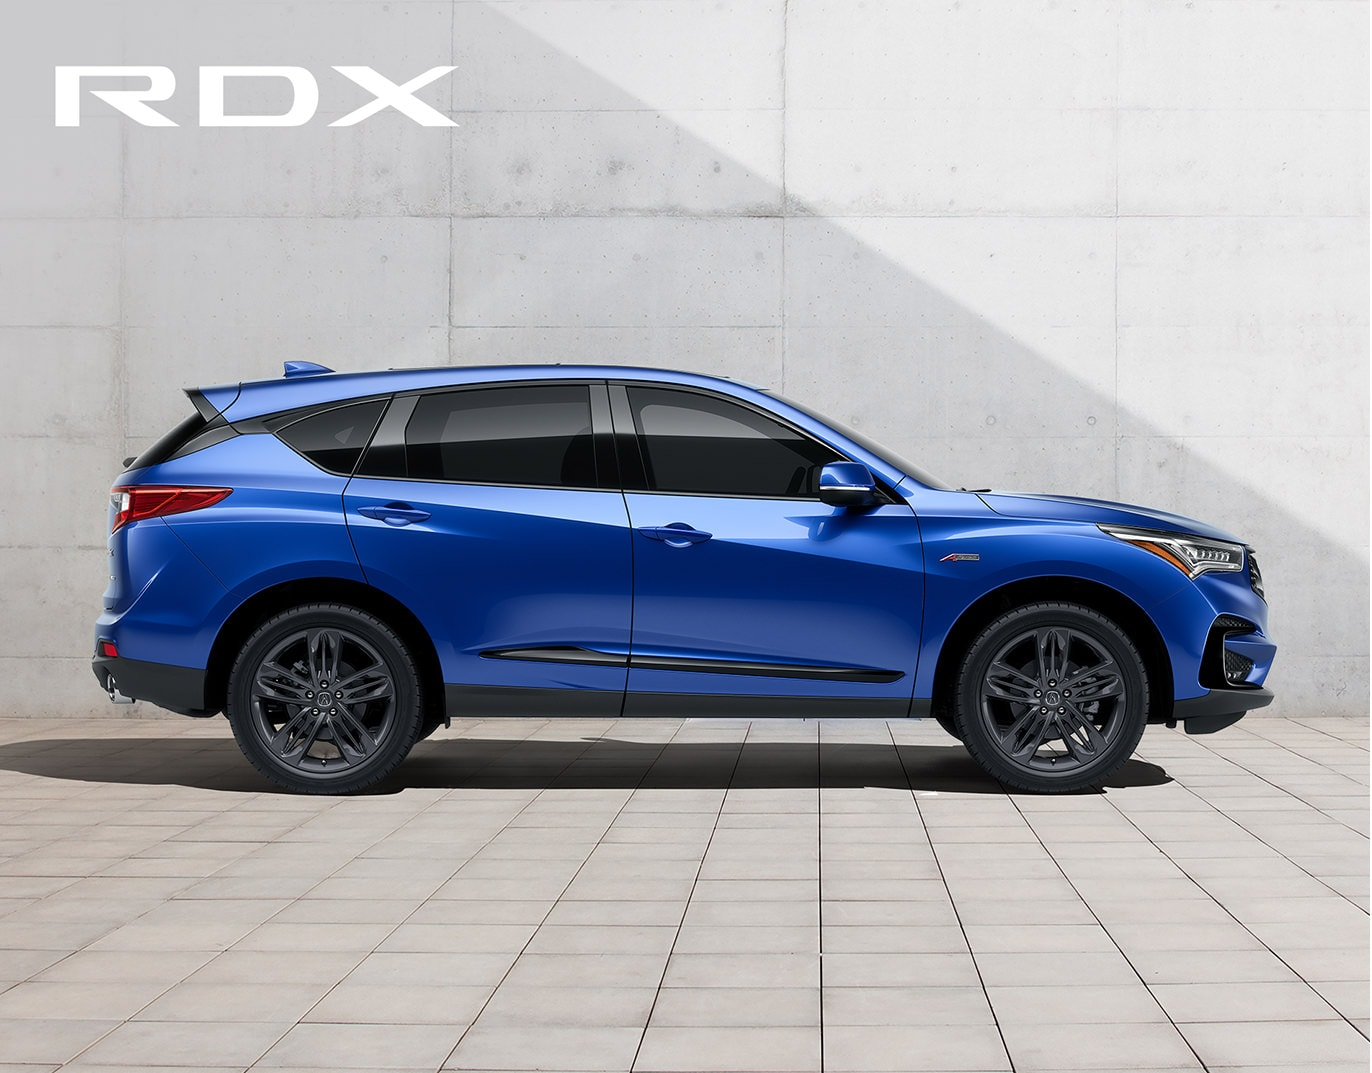 RDX Design Features Cargo Space Acuracom - 2018 acura rdx roof rails